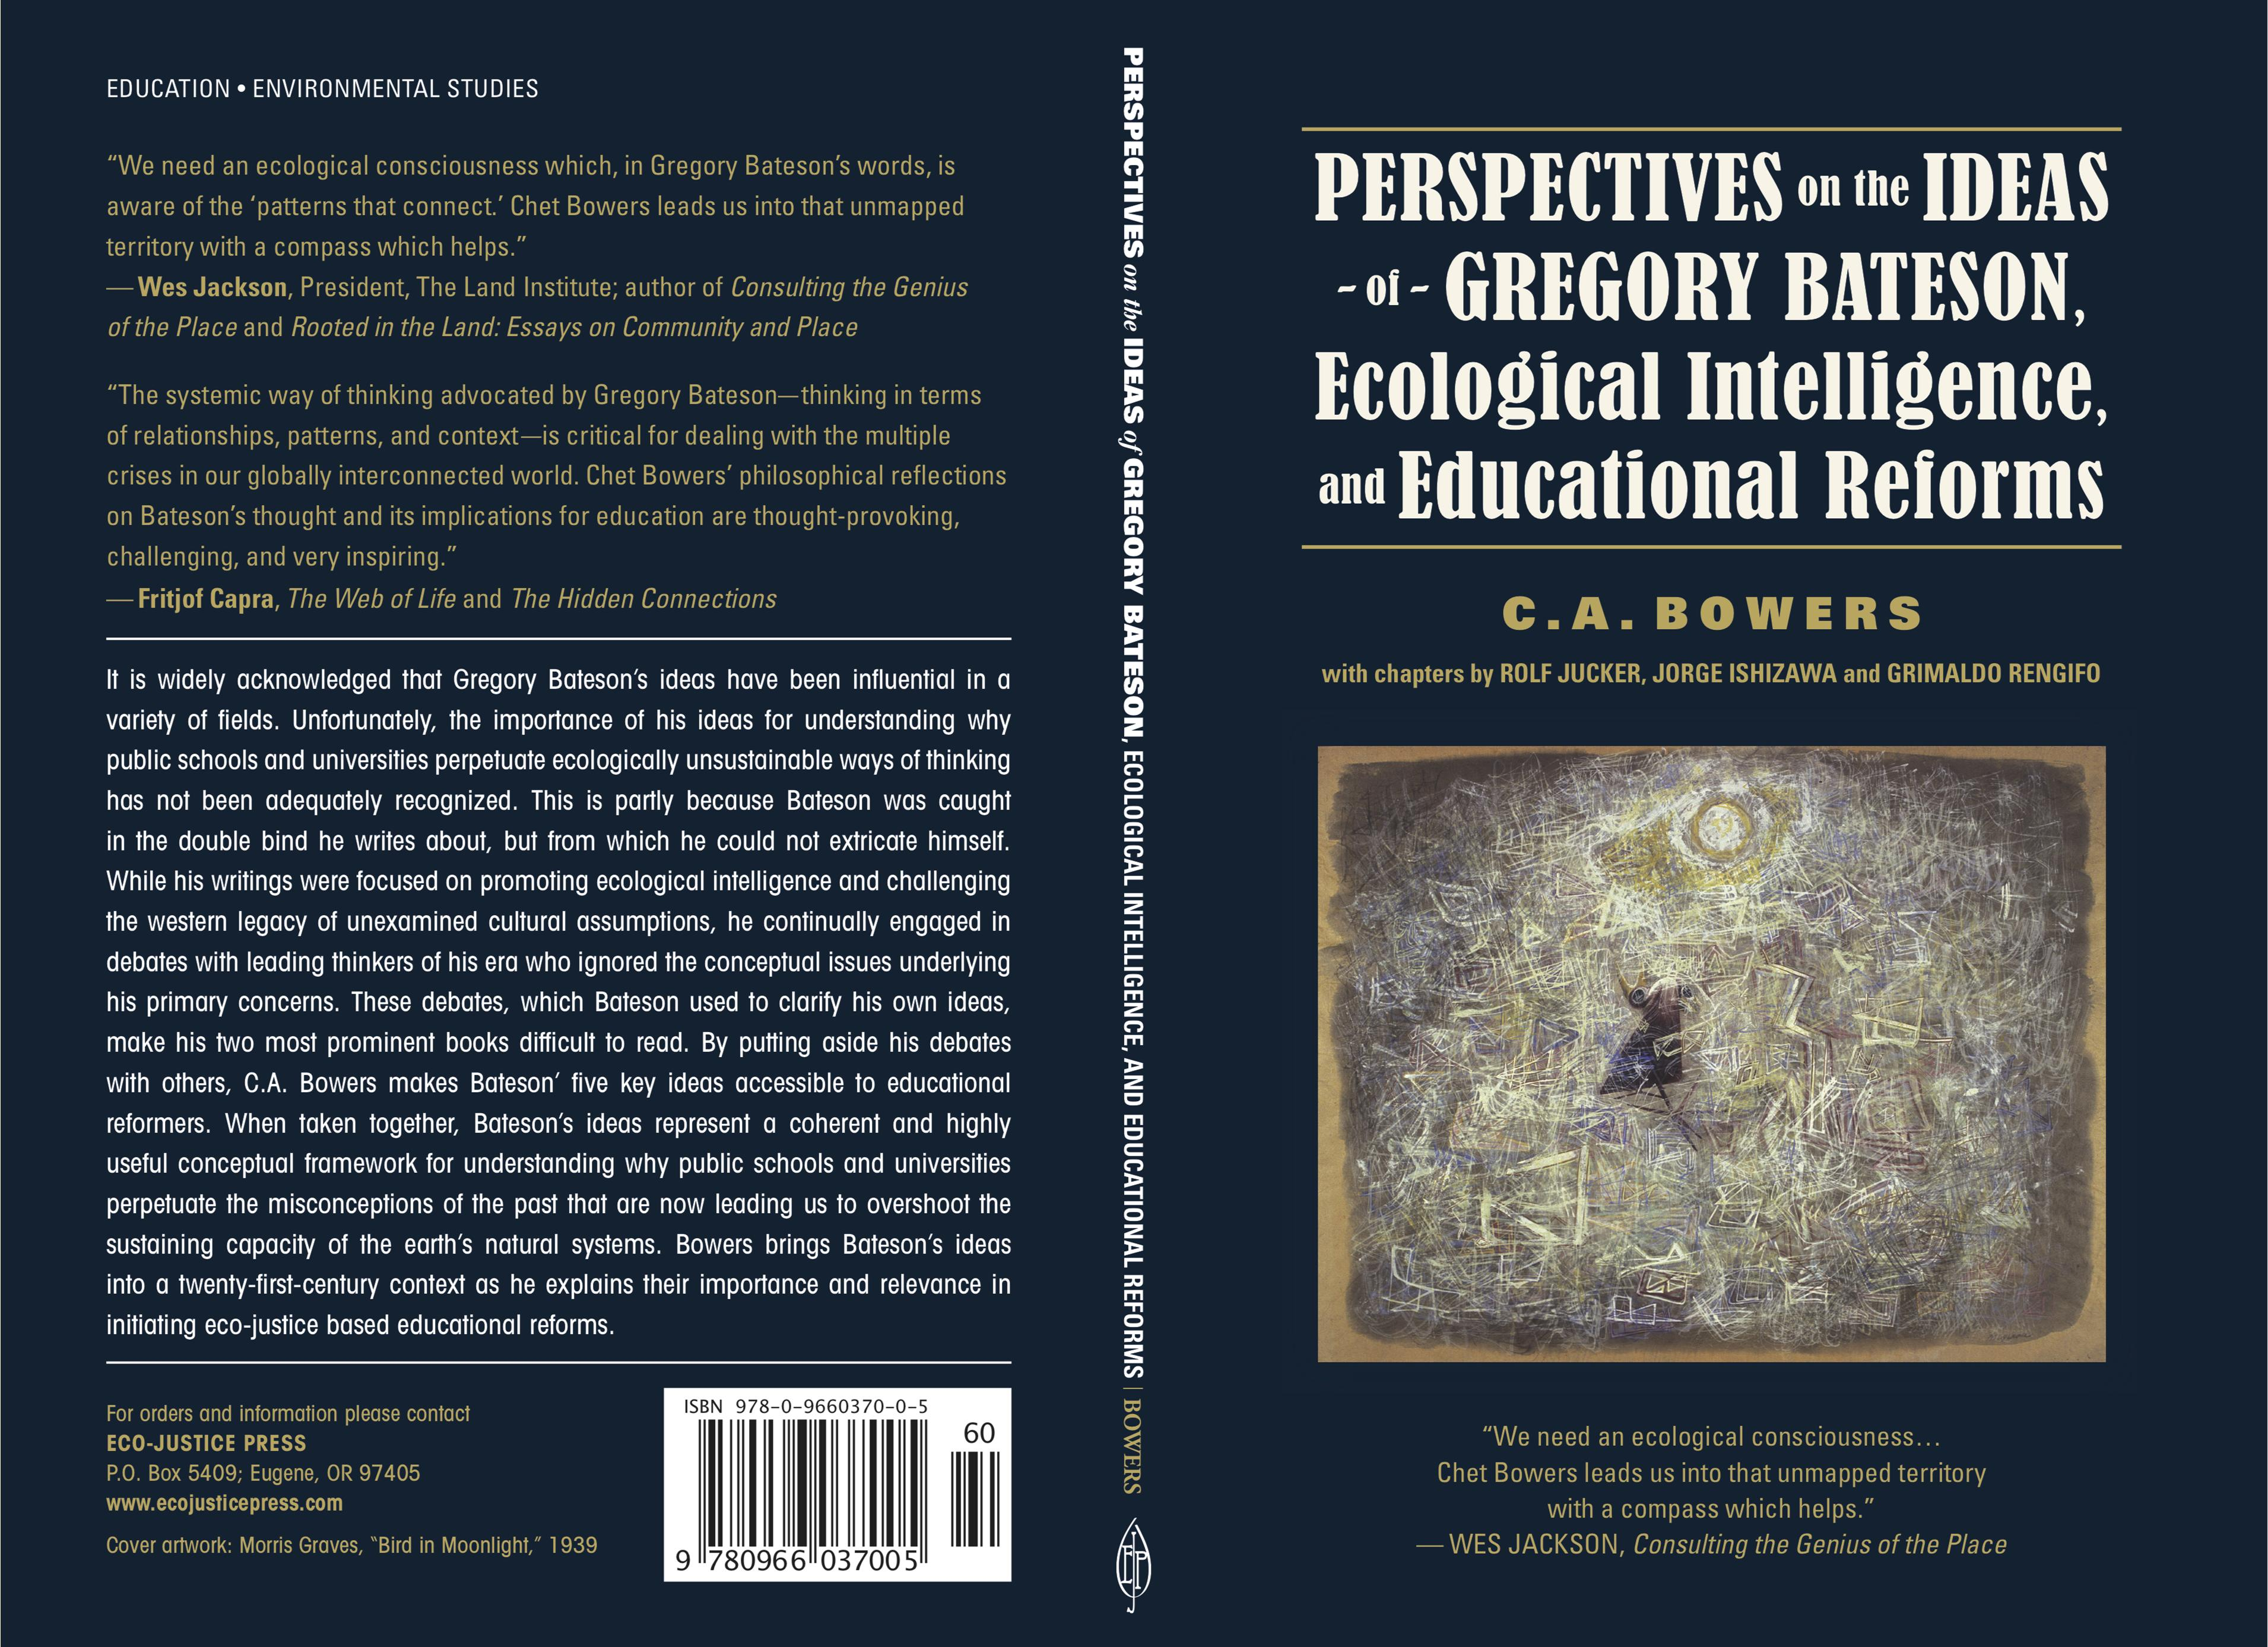 Perspectives on the Ideas of Gregory Bateson, Ecological Intelligence, and Educational Reforms cover image